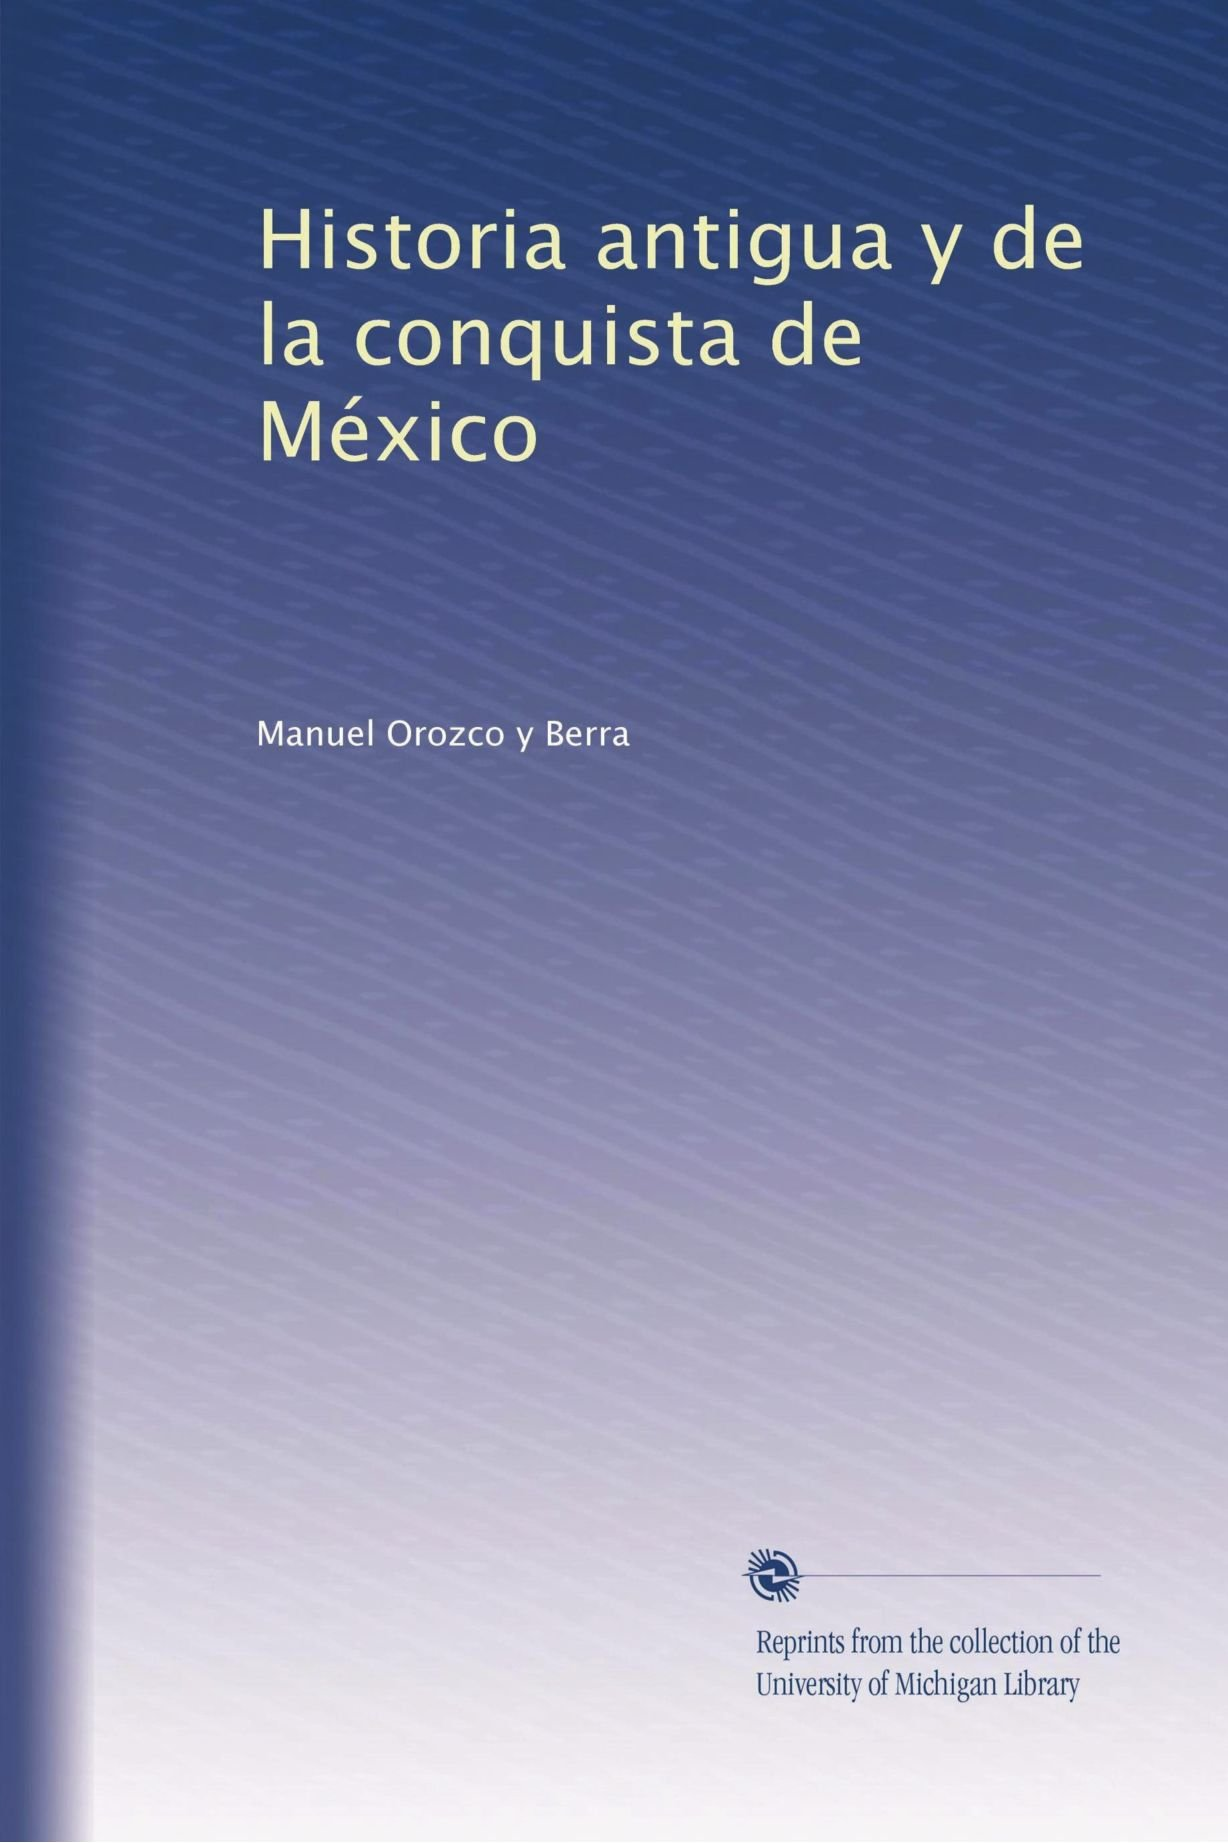 Download Historia antigua y de la conquista de México (Spanish Edition) PDF